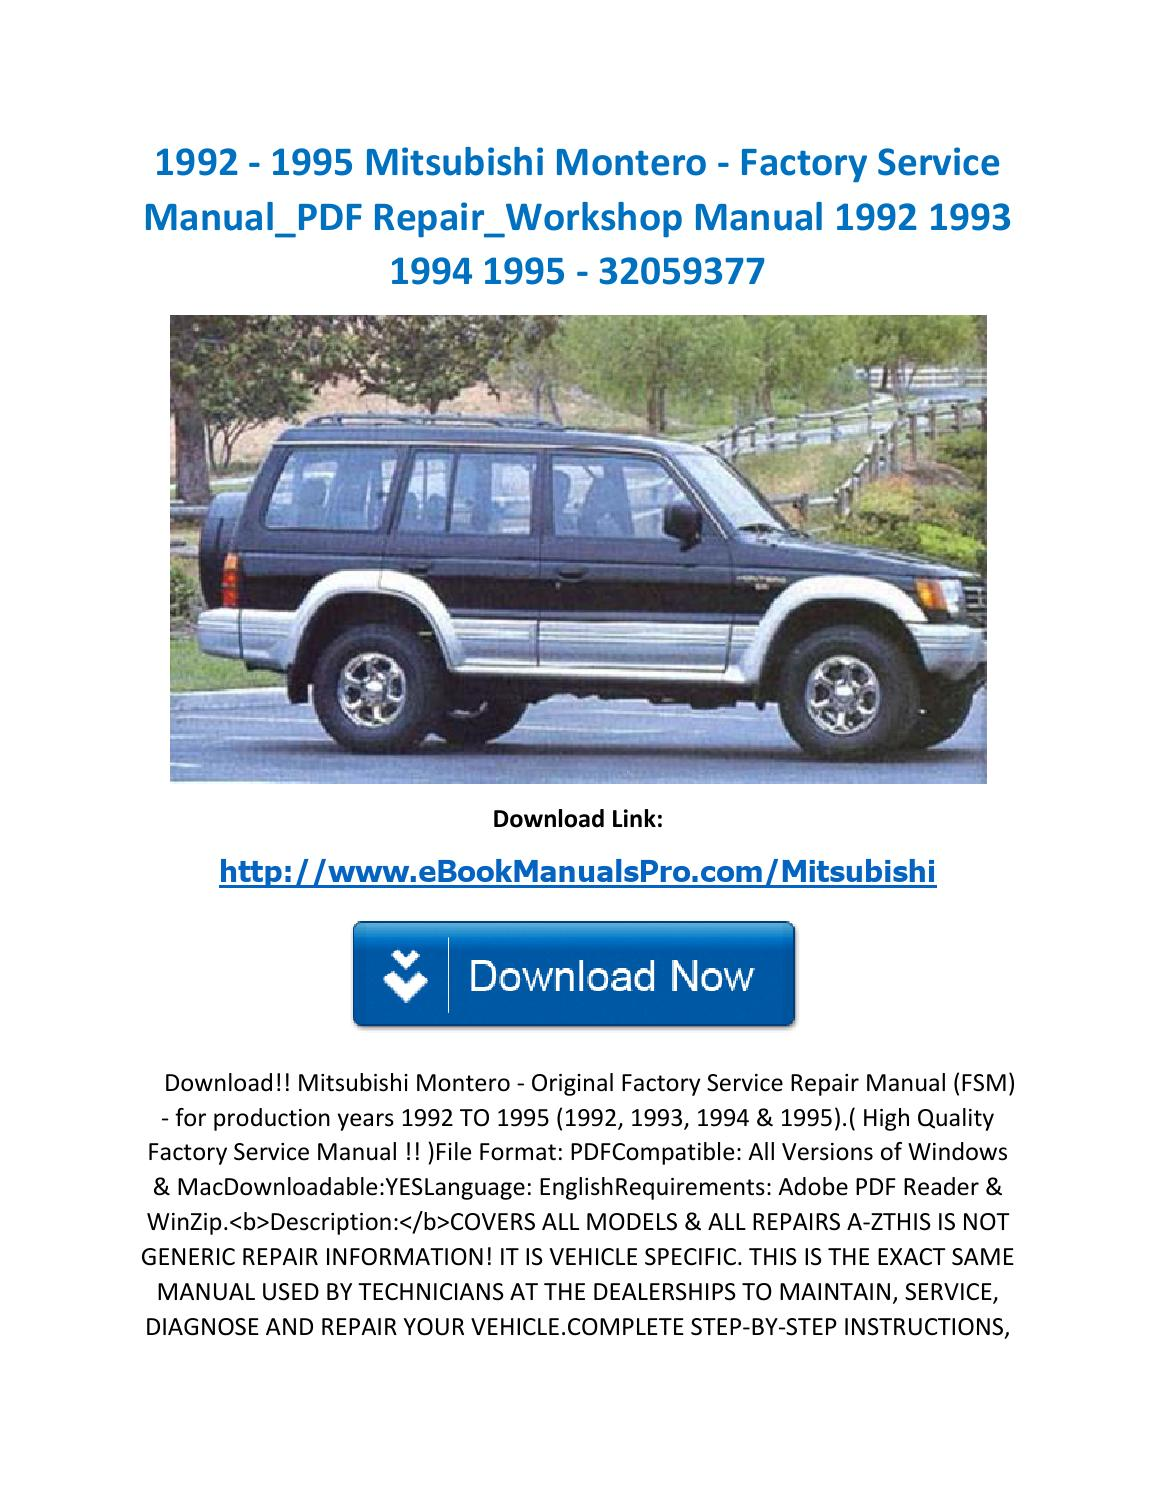 1992 1995 mitsubishi montero factory service manual pdf repair workshop  manual 1992 1993 1994 1995 3 by ebookmanualspro - issuu